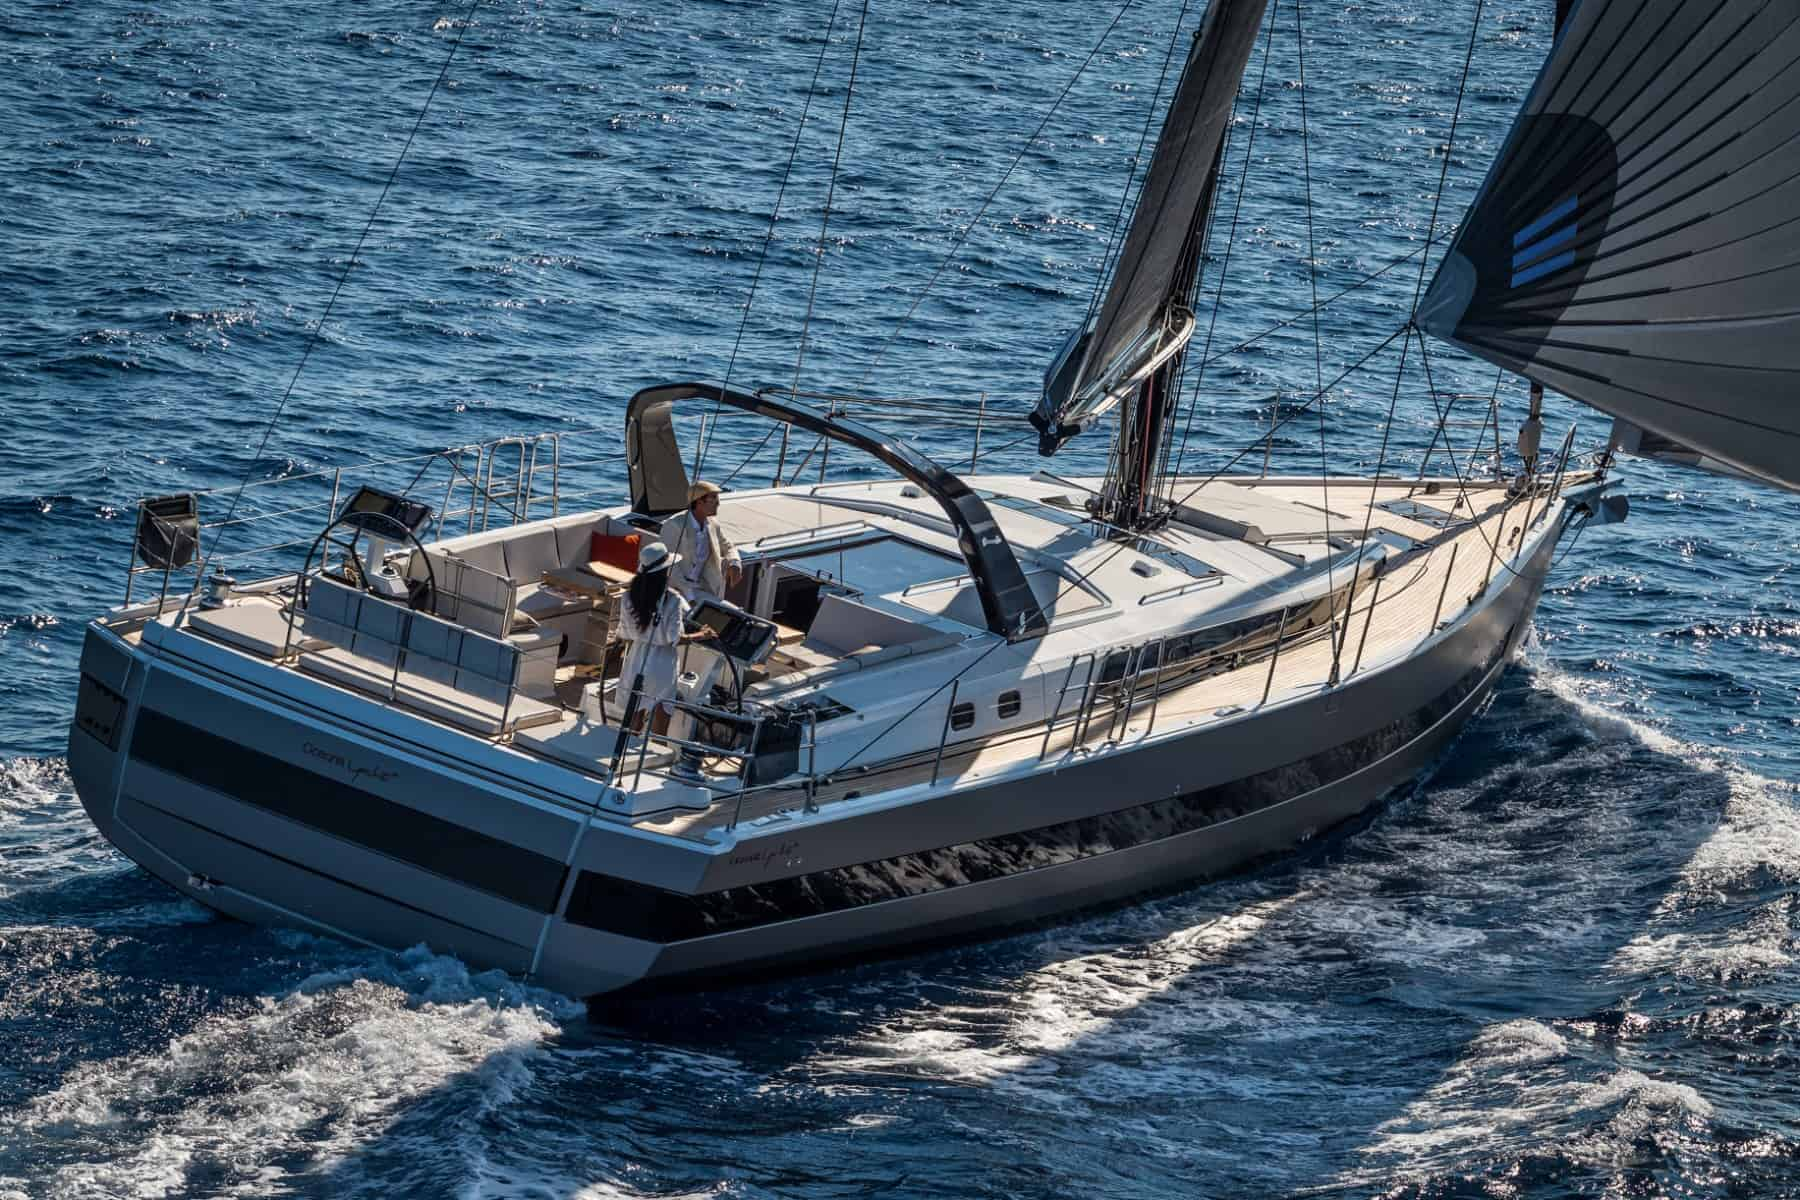 Couple sailing the Beneteau Oceanis Yacht 62 through the splashing waves